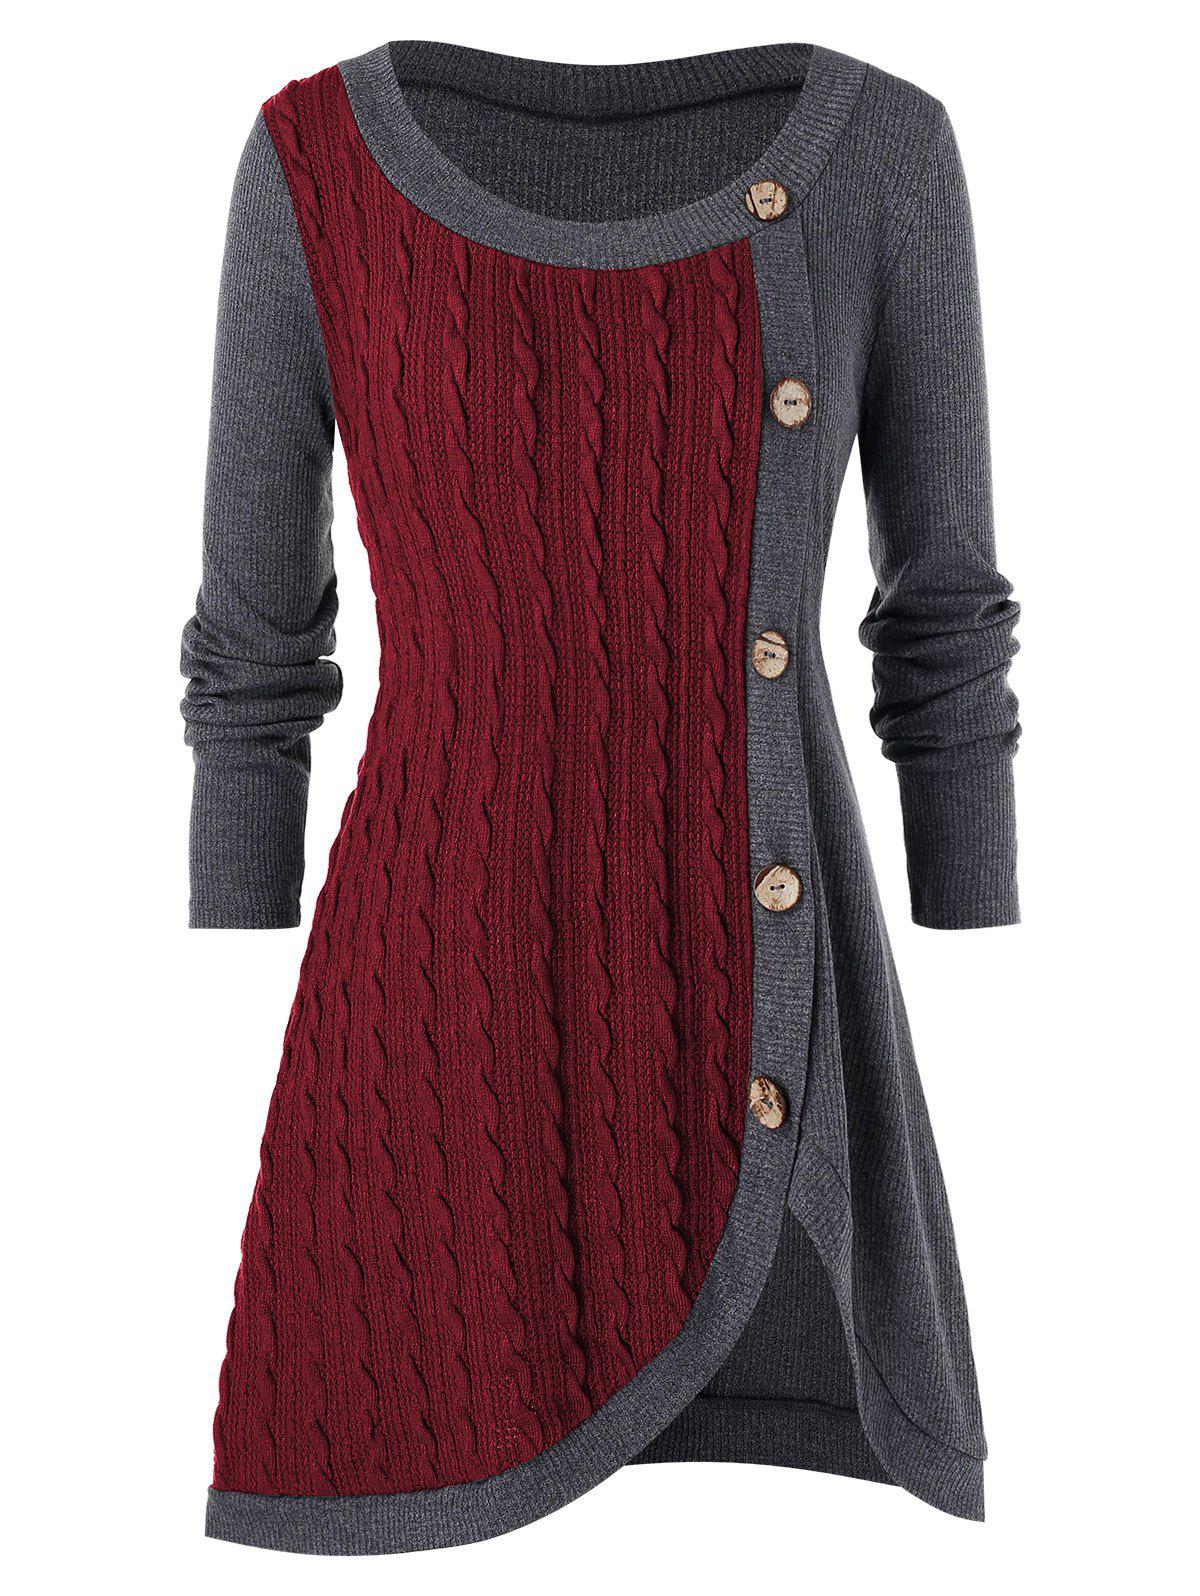 Plus Size Buttoned Front Slit Cable Knit Sweater - FIREBRICK 4X